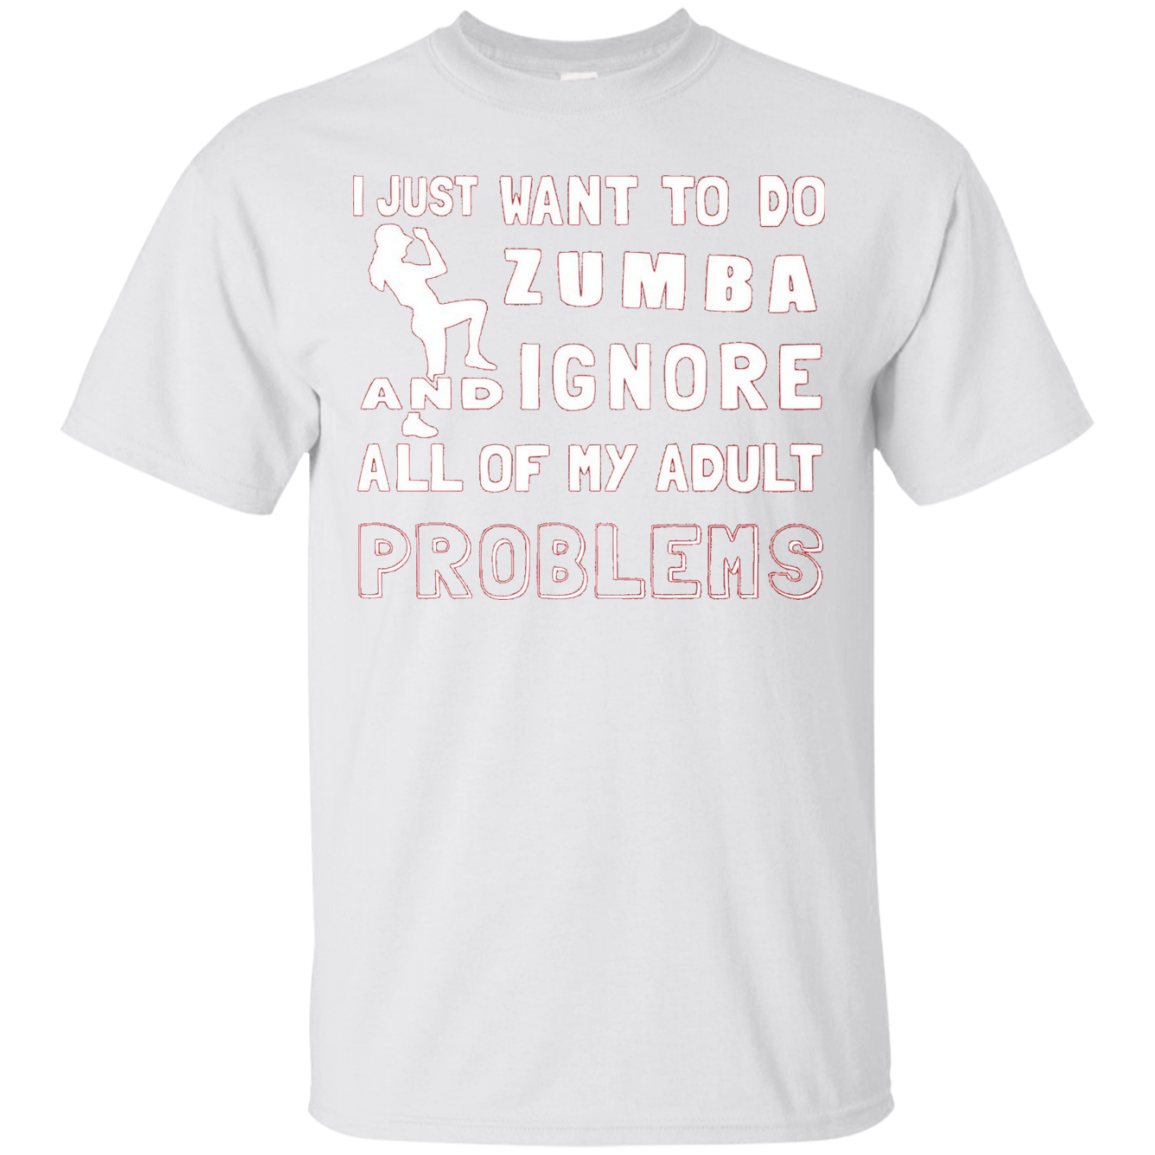 I want to do Zumba & ignore all of my problems T-shirt